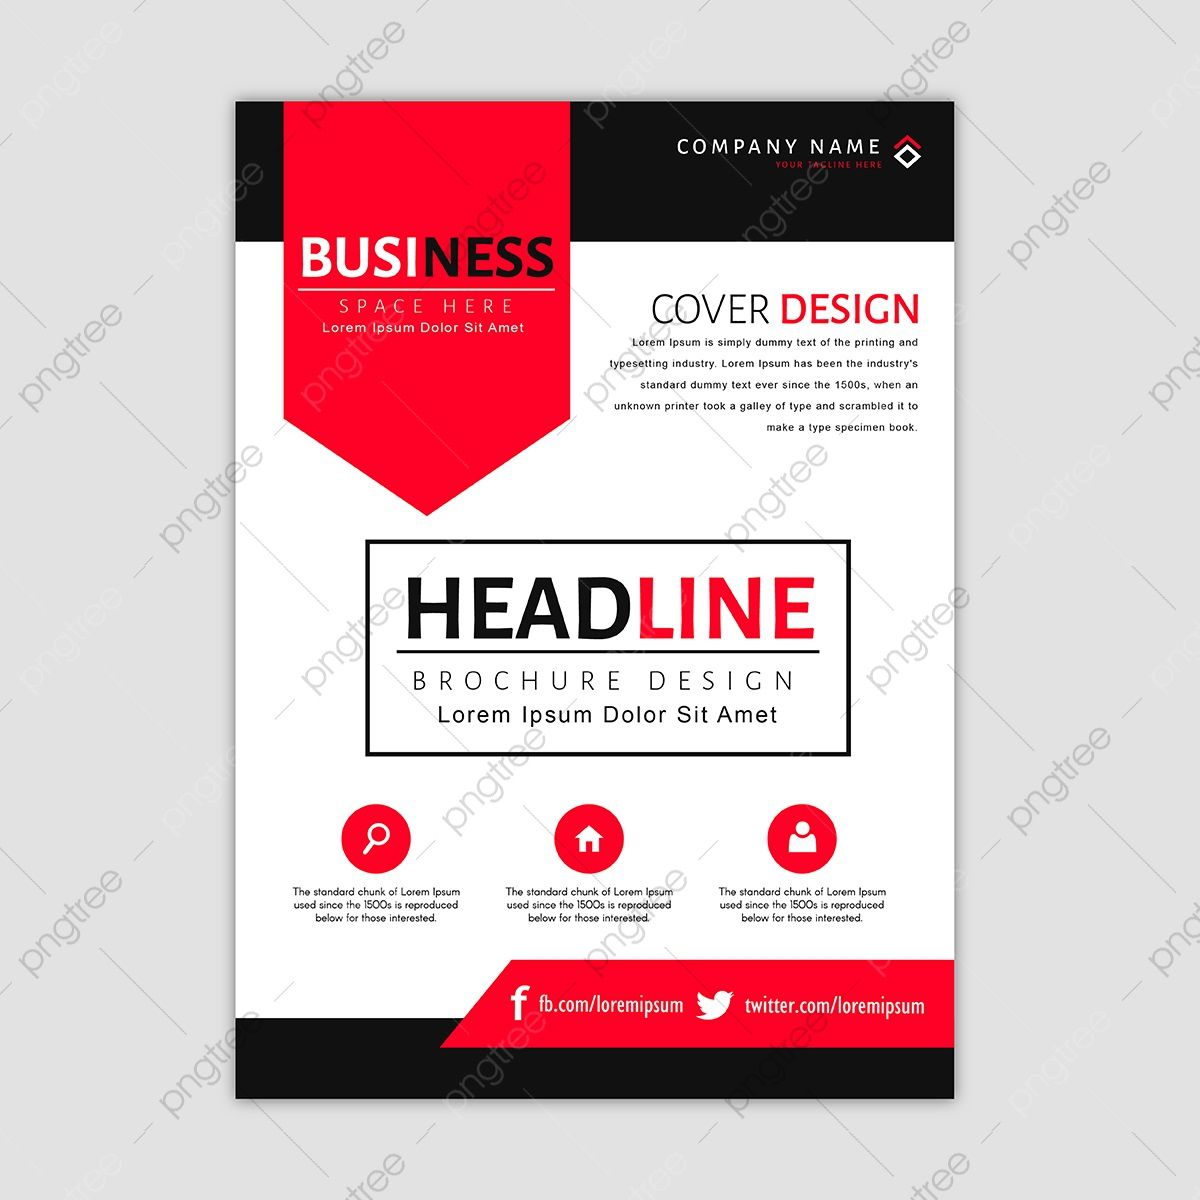 008 Frightening Busines Brochure Design Template Free Download Photo Full